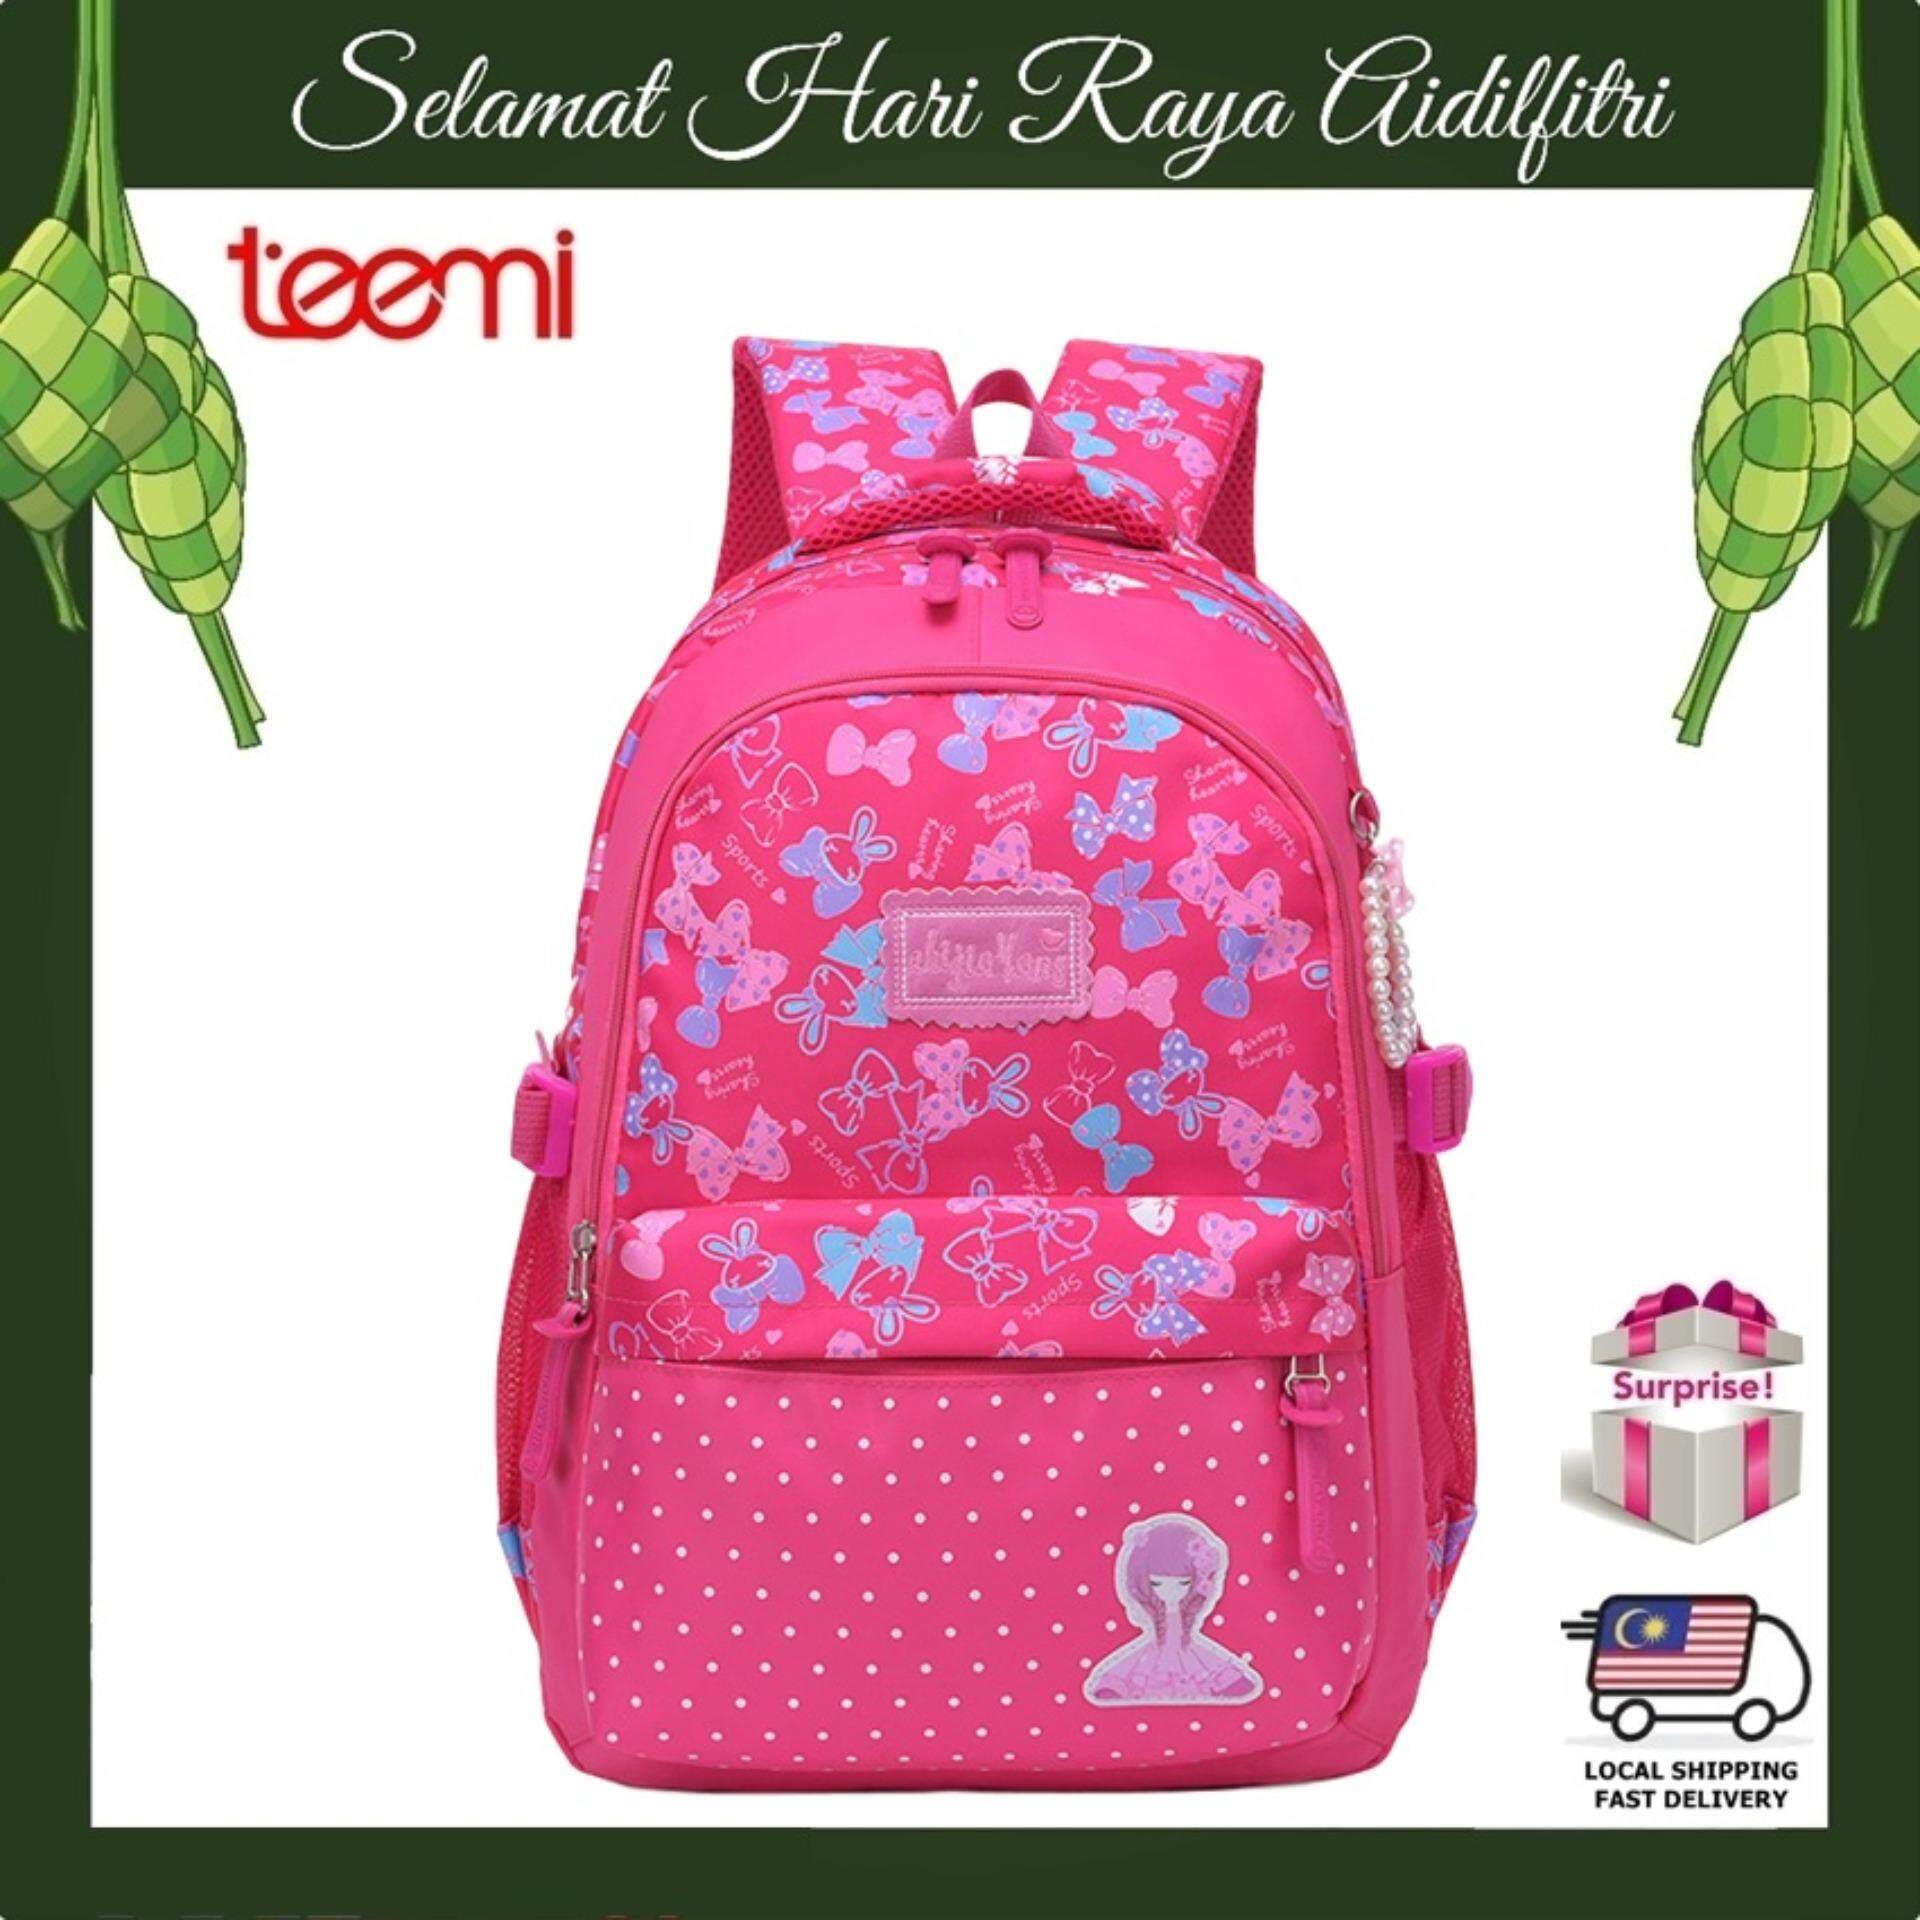 TEEMI Dreamy Candy Color Princess Girls Water Resistant Primary Secondary Nylon Orthopedic School Bag Ribbon Printing Kids Children Laptop Backpack - Hot Pink